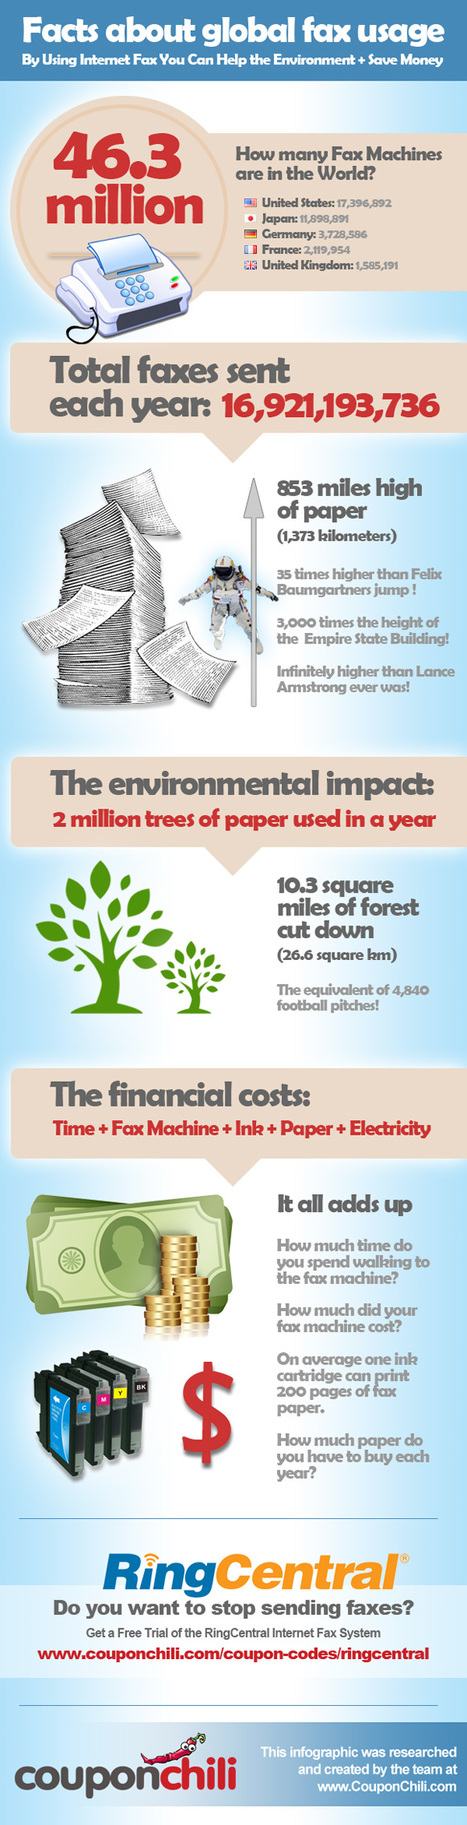 Internet Fax VS Fax Machines: Which Save Money and Environment? | All Infographics | All Infographics | Scoop.it